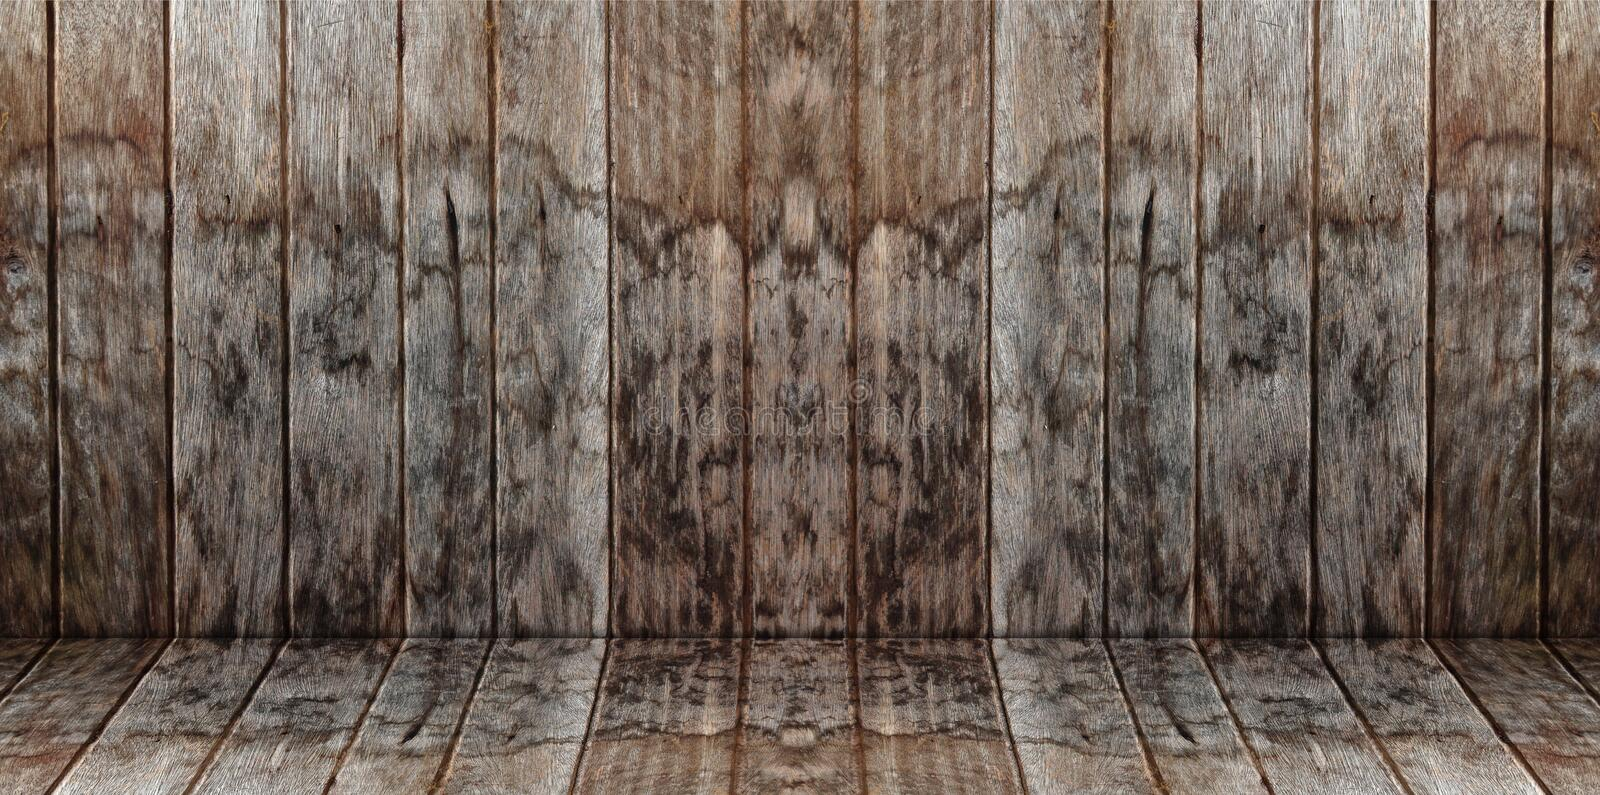 Download Wood room stock photo. Image of decorative, floor, panel - 24997734